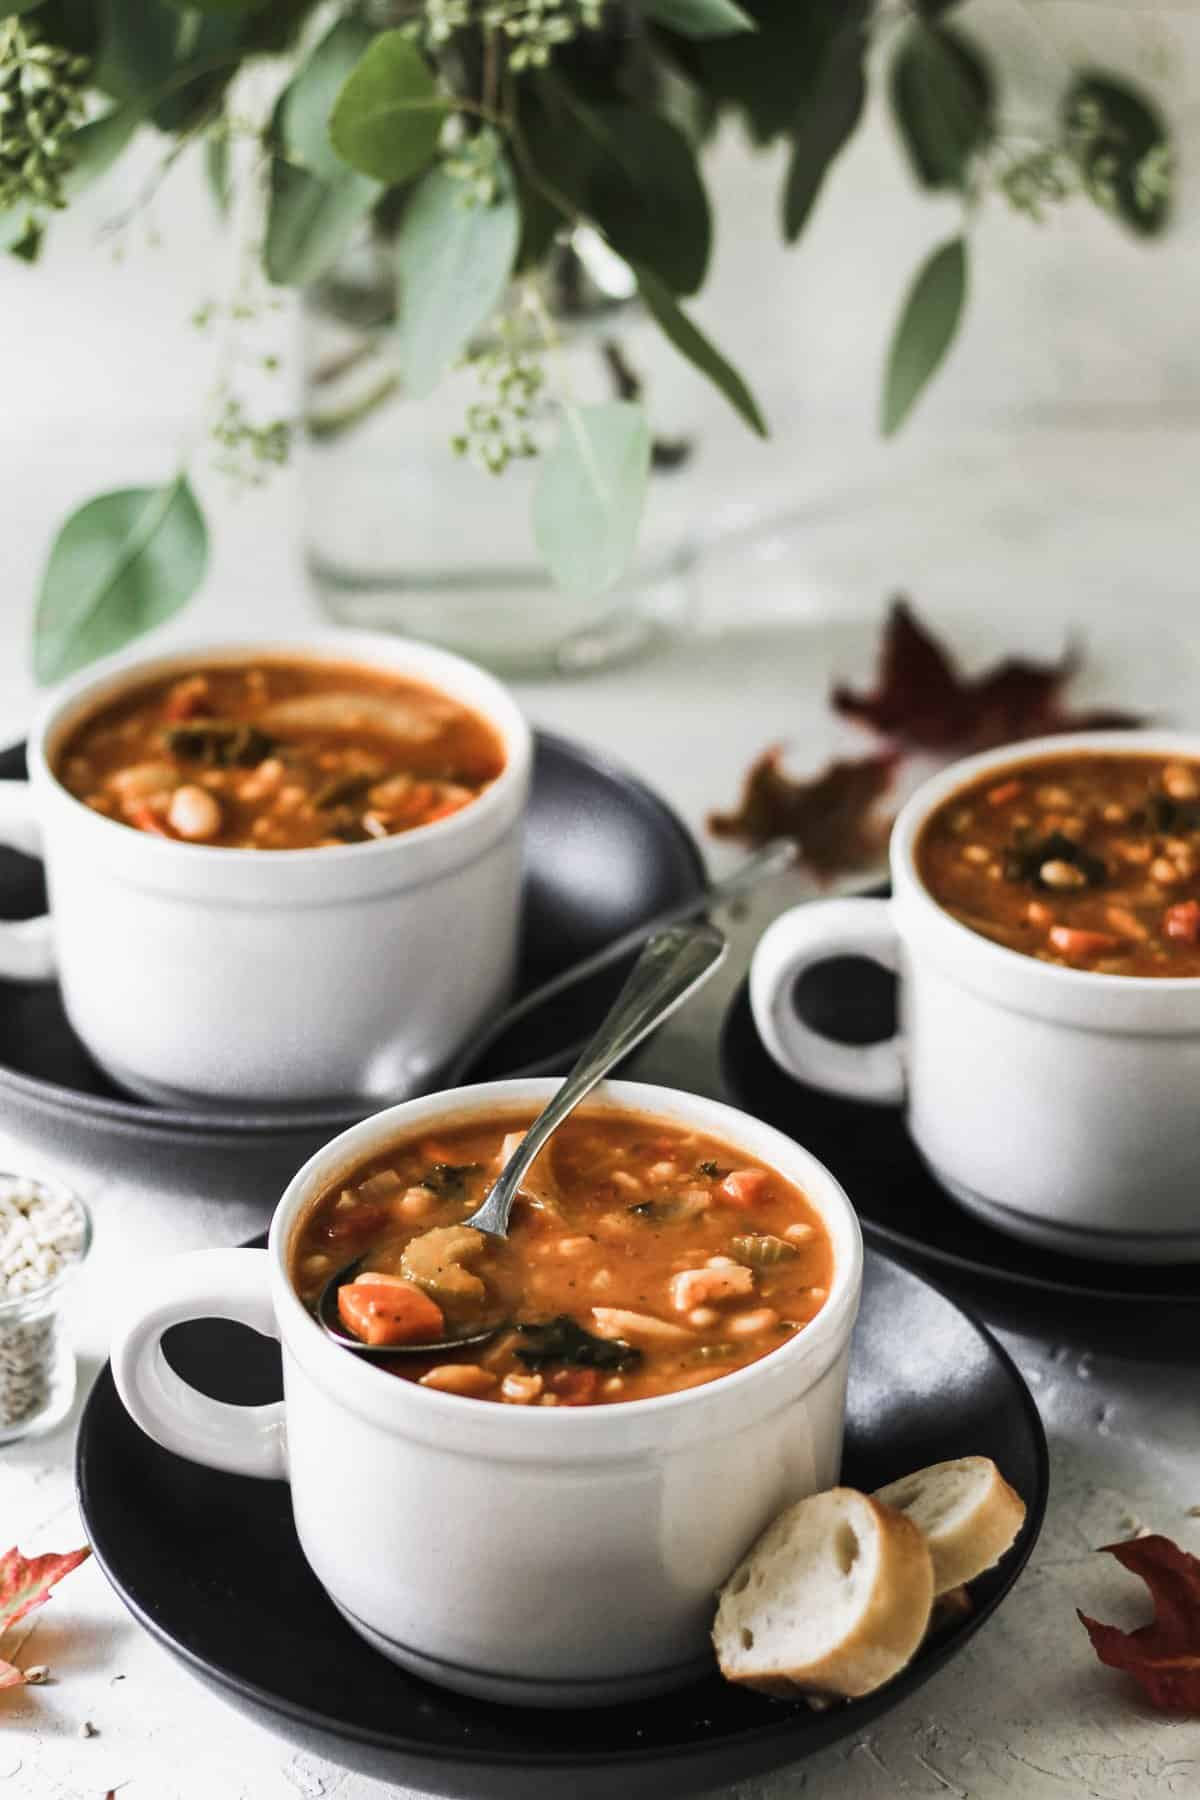 One pot vegetable bean and barley soup in 3 white mugs on top of black plates with metal spoons.